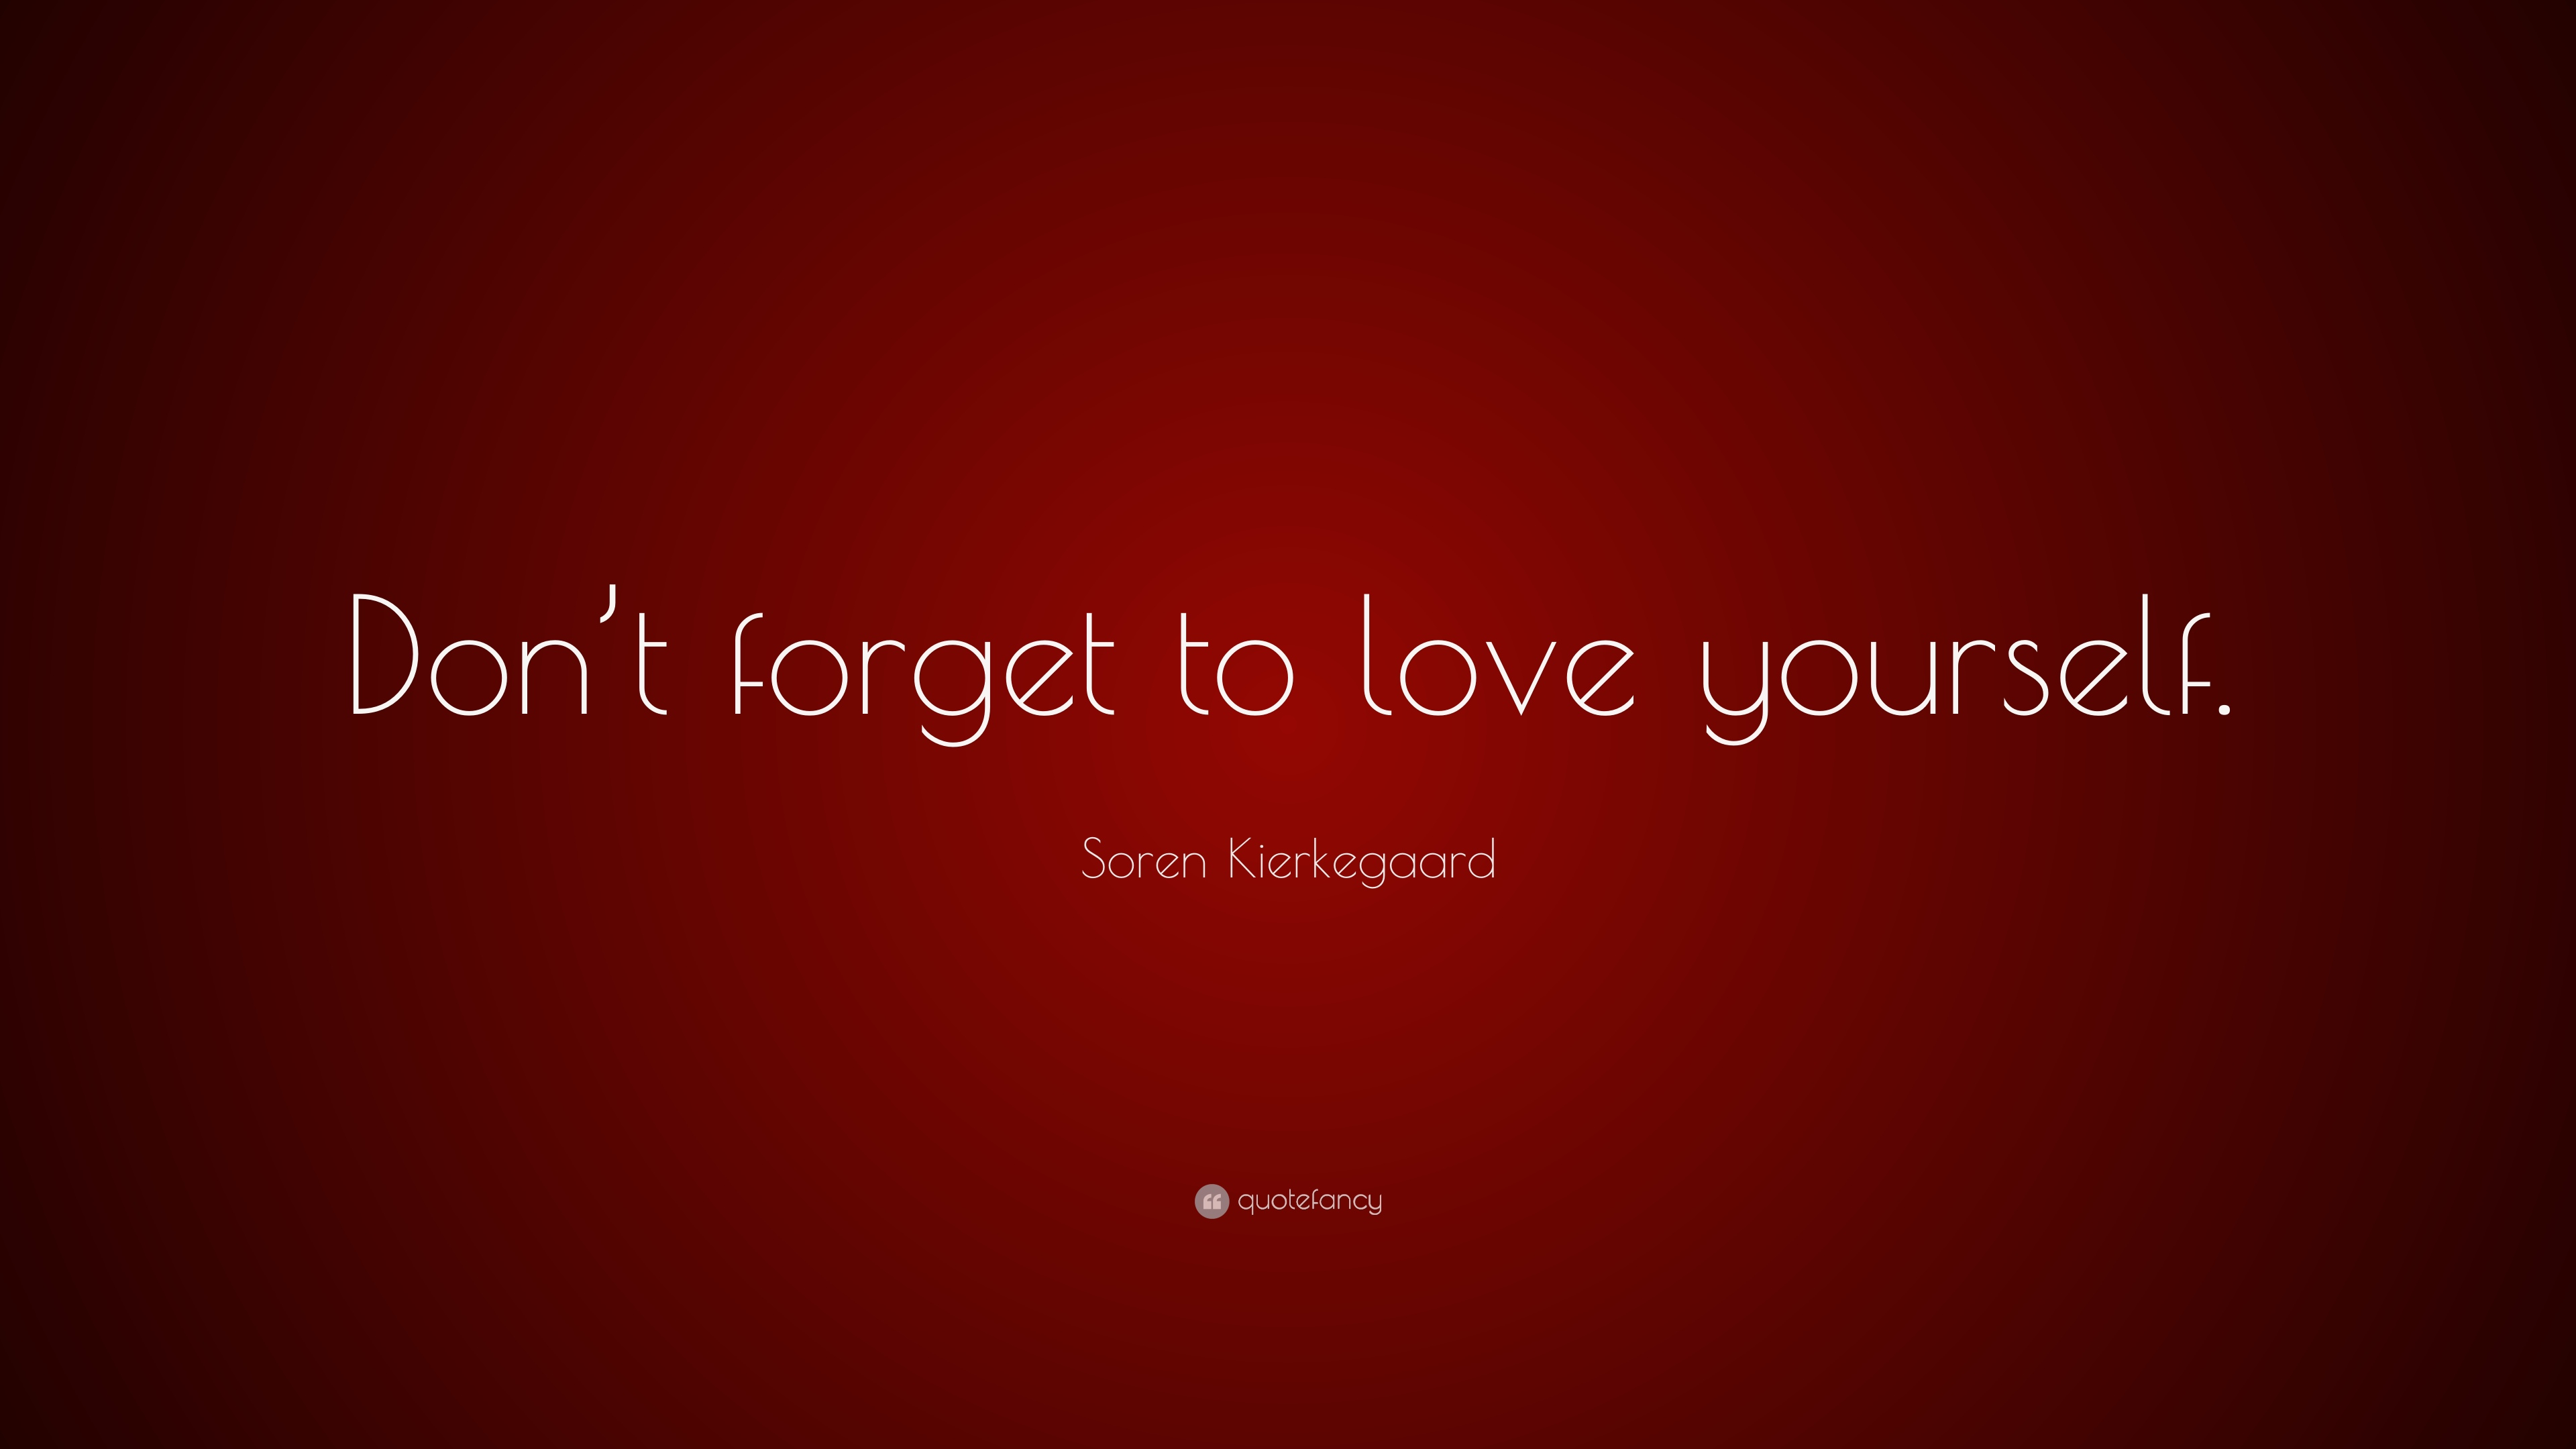 Love Yourself Quotes Wallpaper : Soren Kierkegaard Quote: ?Don t forget to love yourself.? (12 wallpapers) - Quotefancy